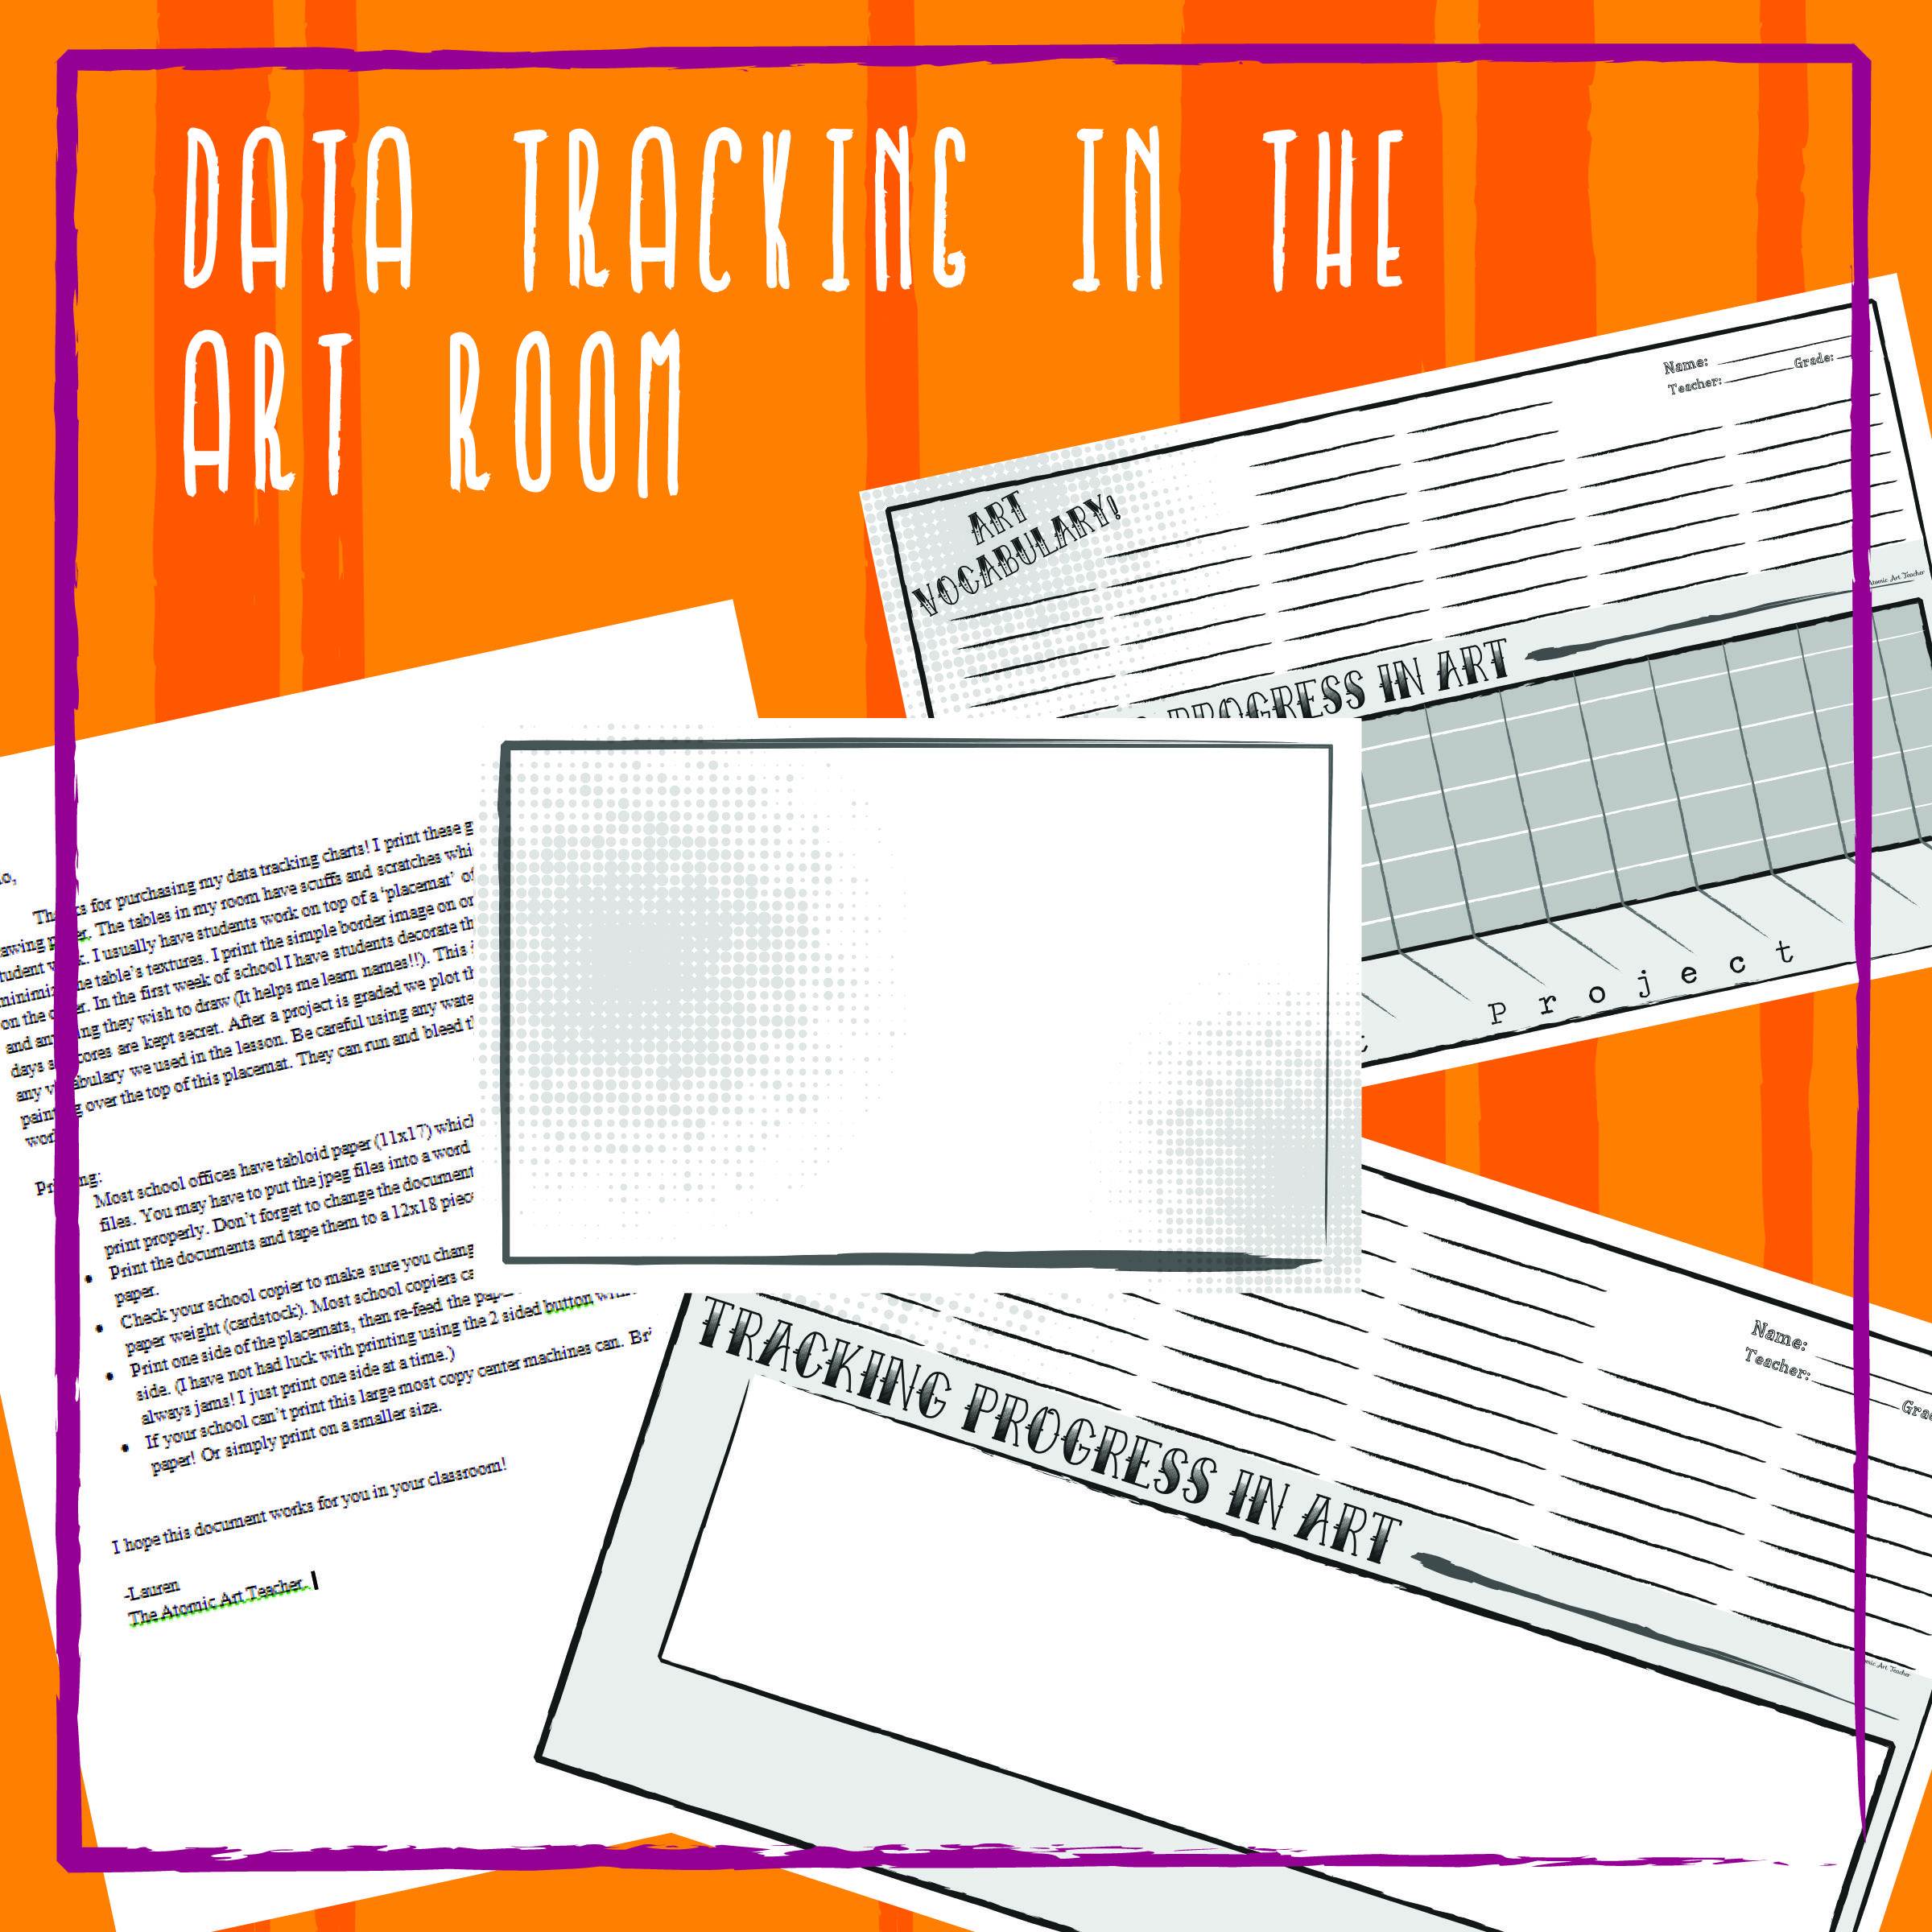 Student Data Tracking For The Visual Arts Classroom